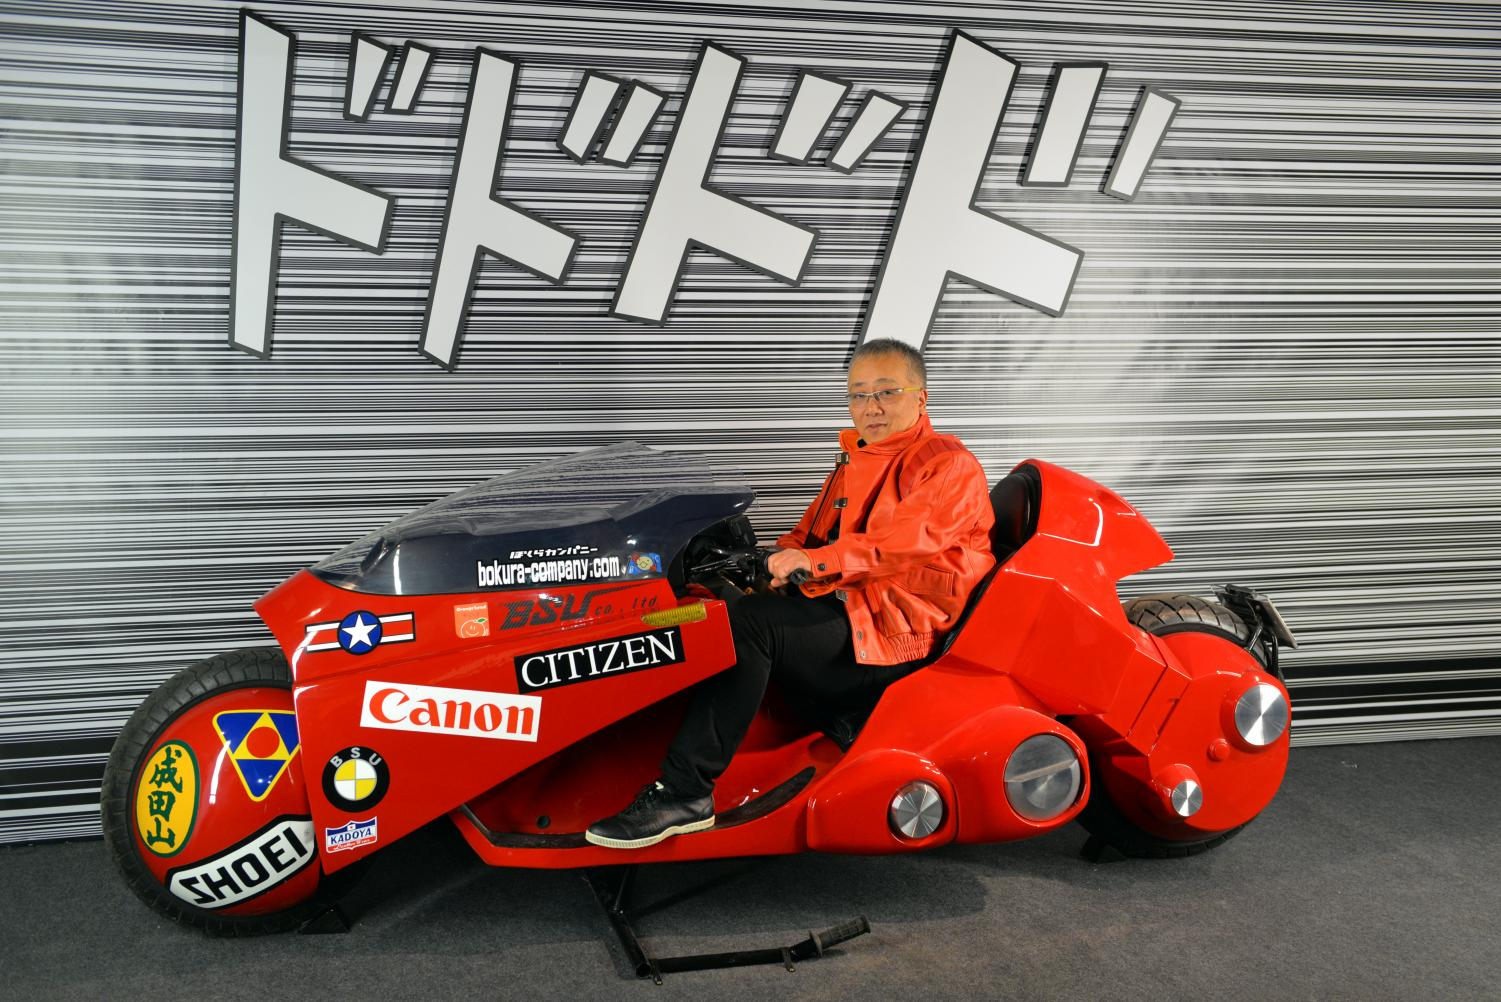 """Katsuhiro Otomo riding Kaneda's motorcycle at Angoulême International Comics Festival on Jan. 27, 2016. Columnist Dylan recognizes the film """"Akira"""" predicted many of the political, social and economic issues in 2019."""